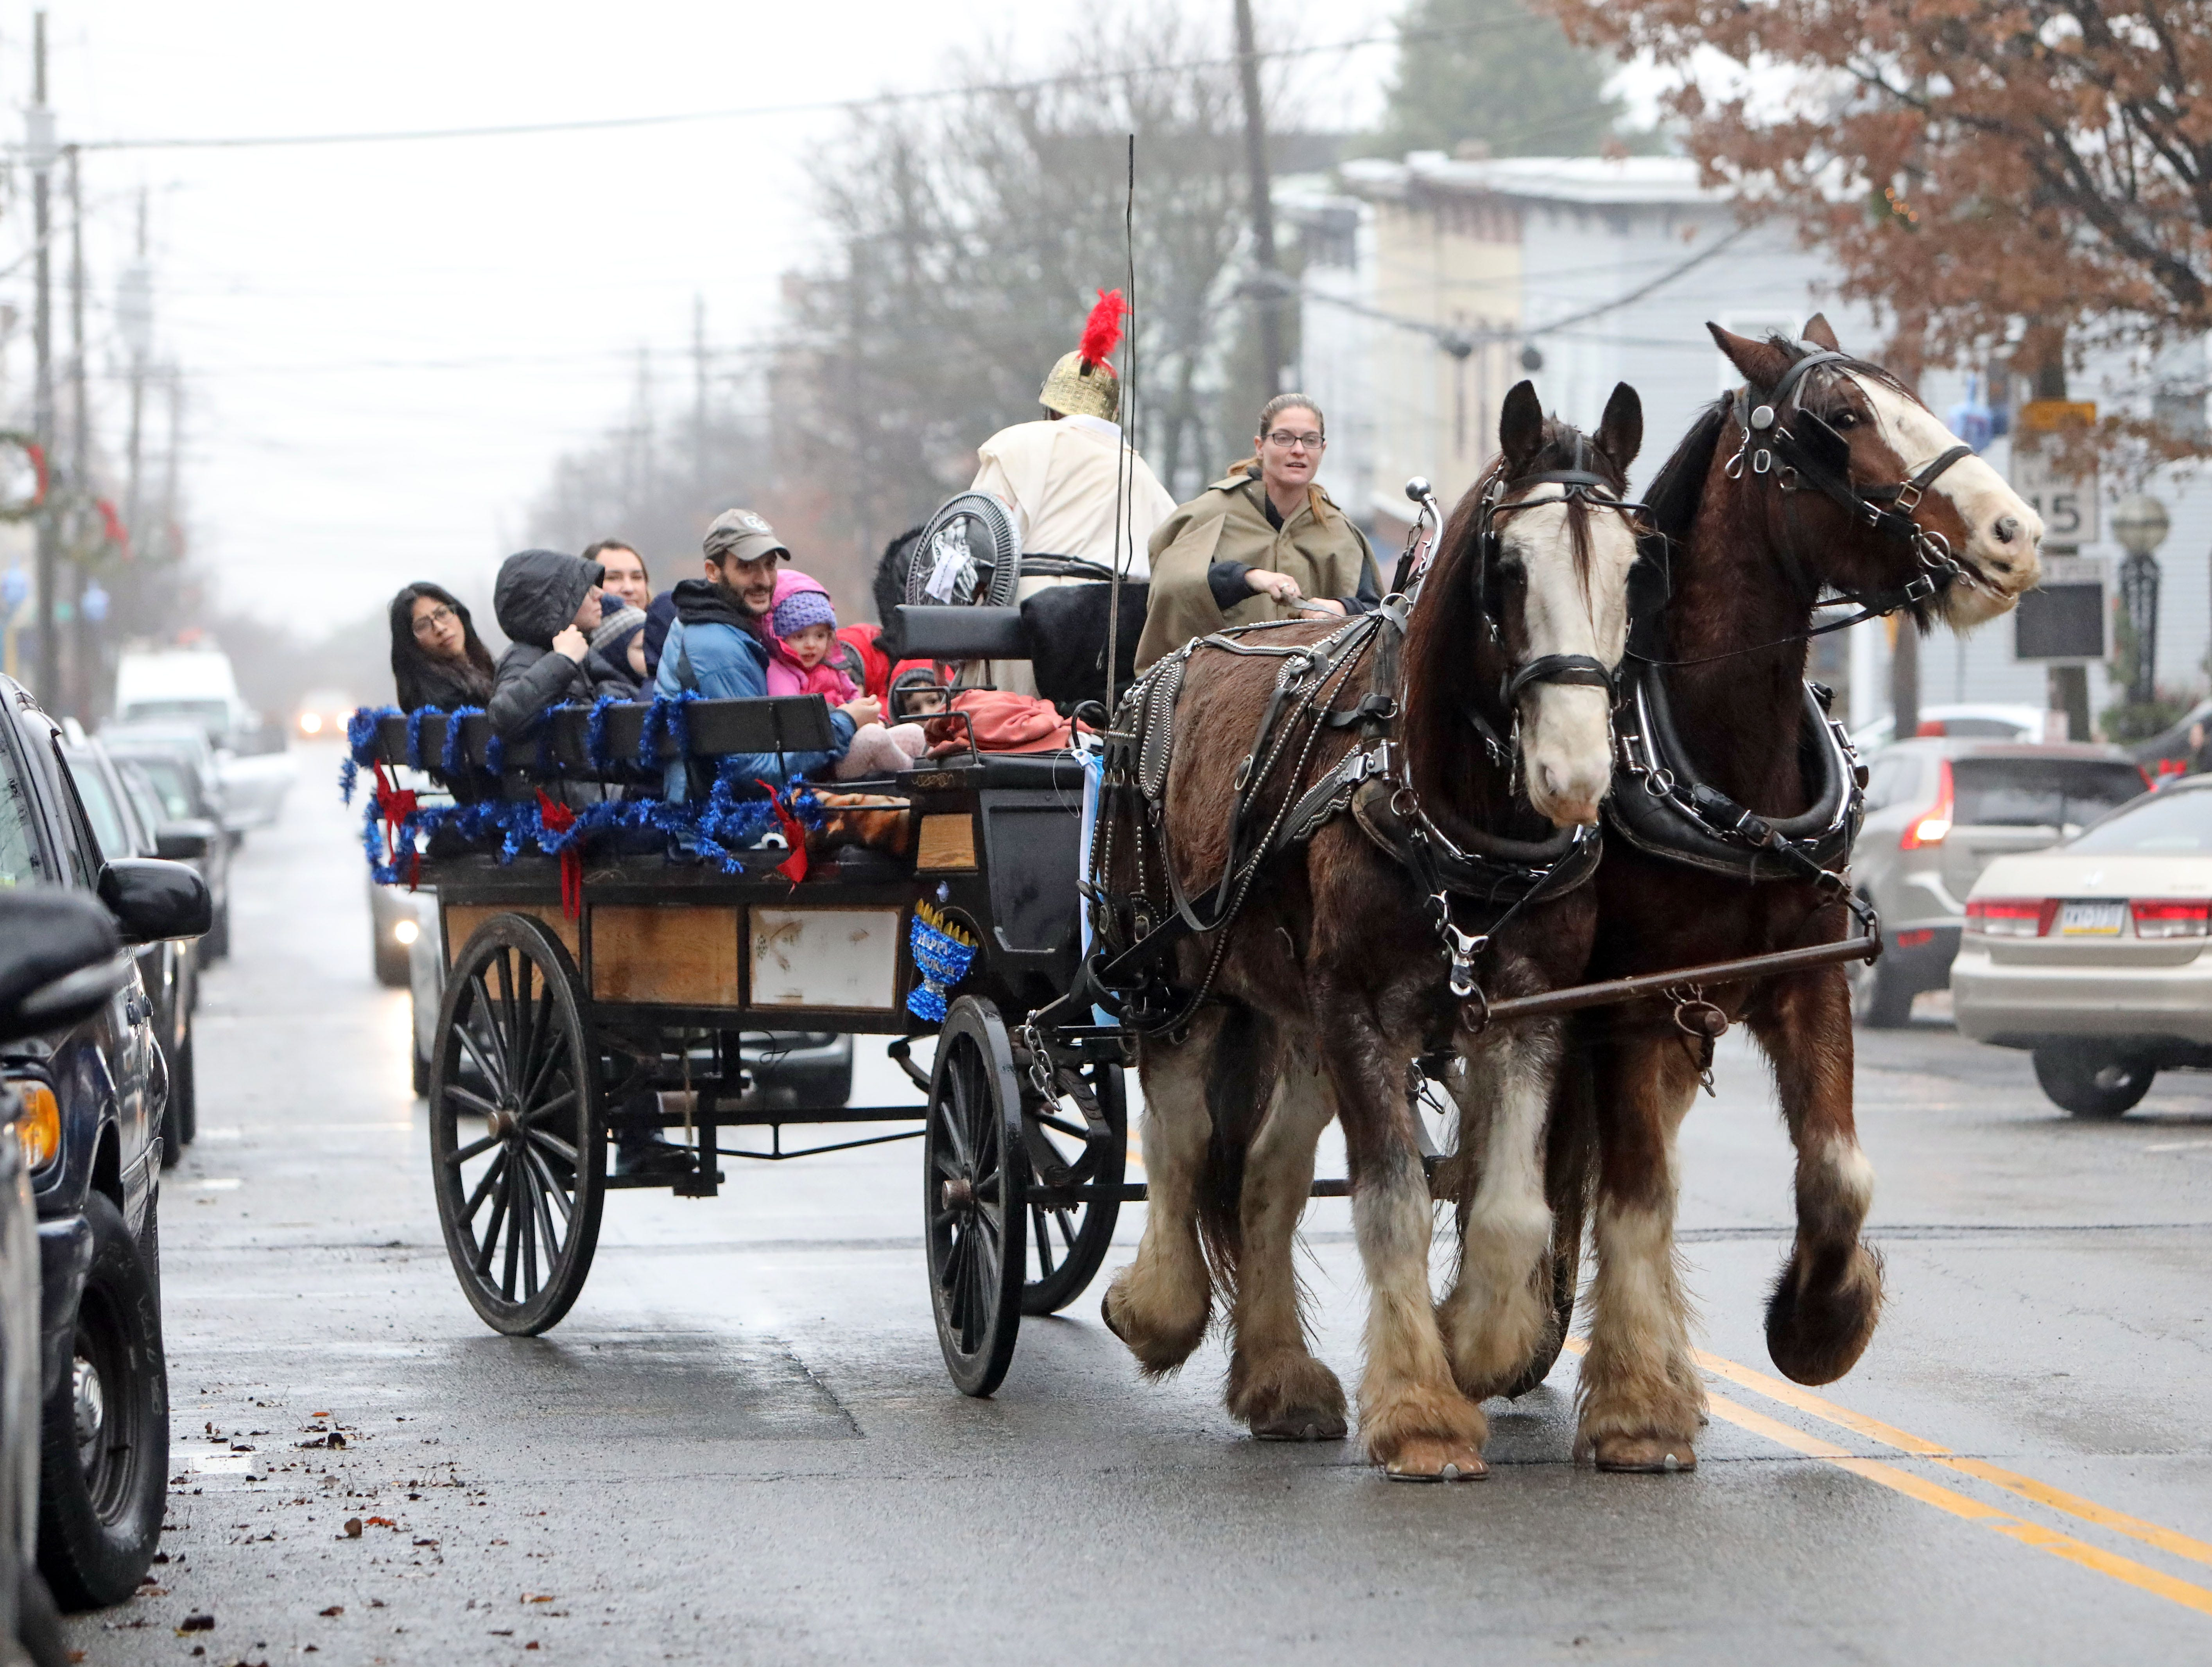 Families take a ride on the Judah Maccabee horse-drawn carriage during the Hanukkah Village event Sunday in Irvington sponsored by the Chabad of the Rivertowns